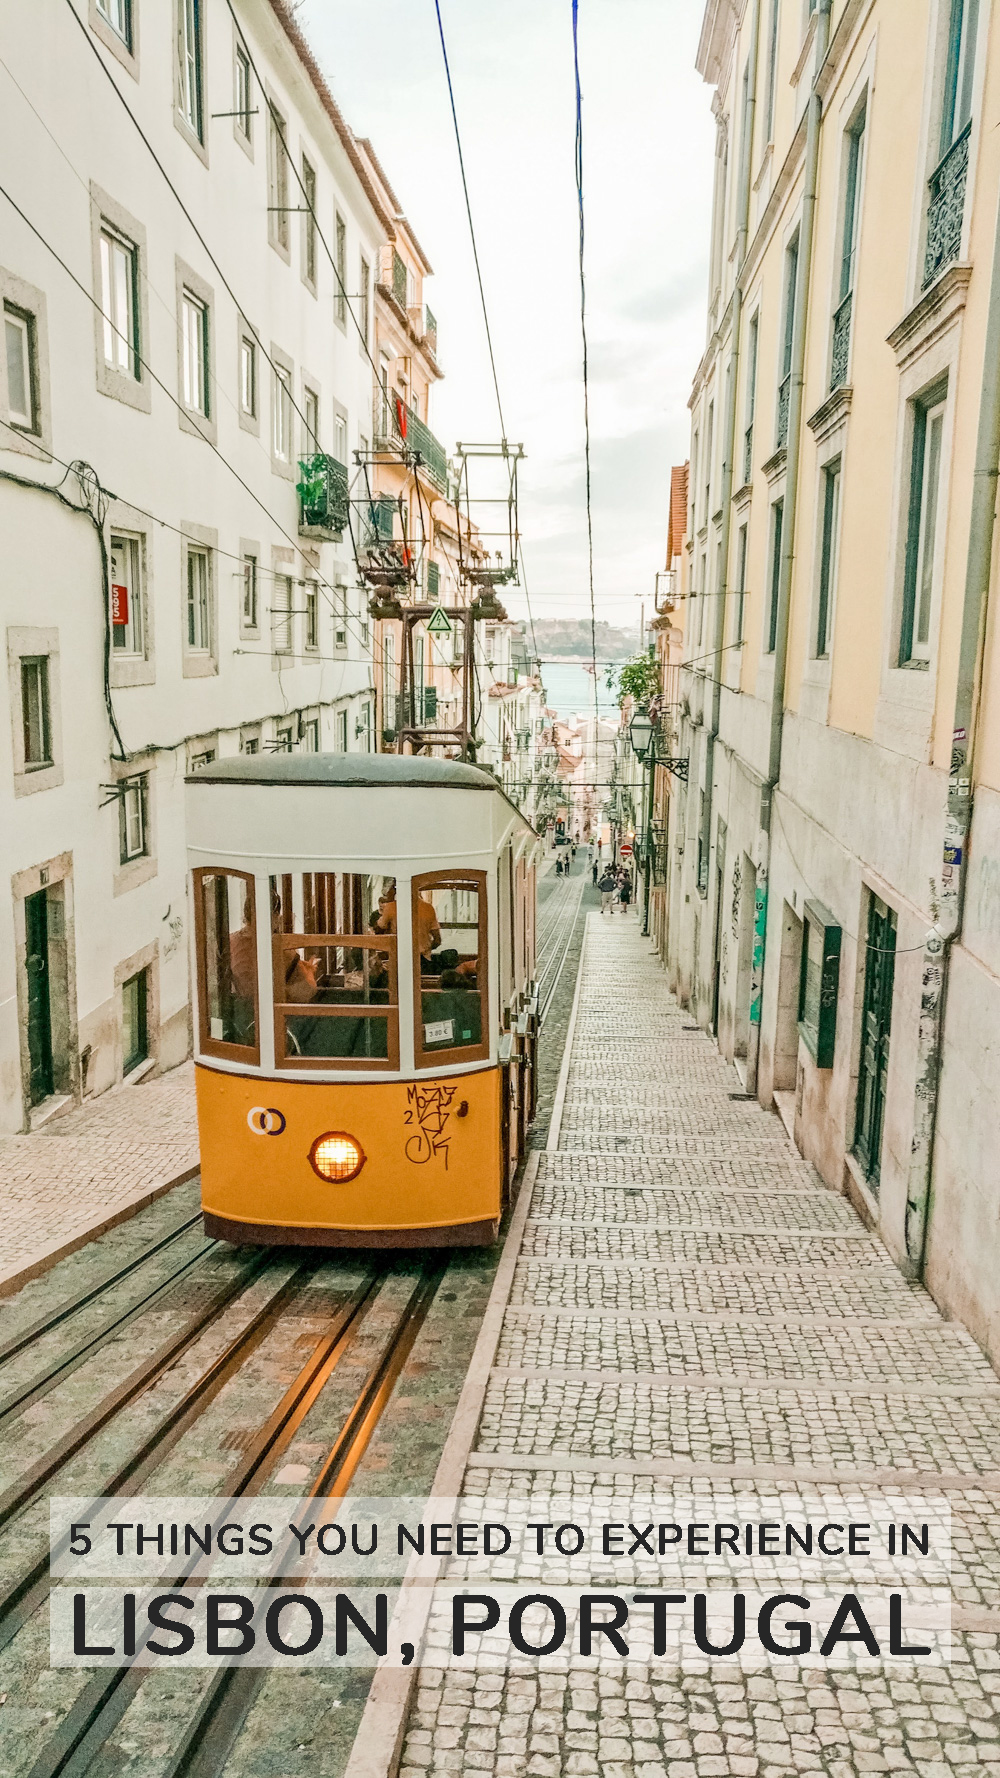 5 things you need to experience in Lisbon, Portugal | Aliz's Wonderland